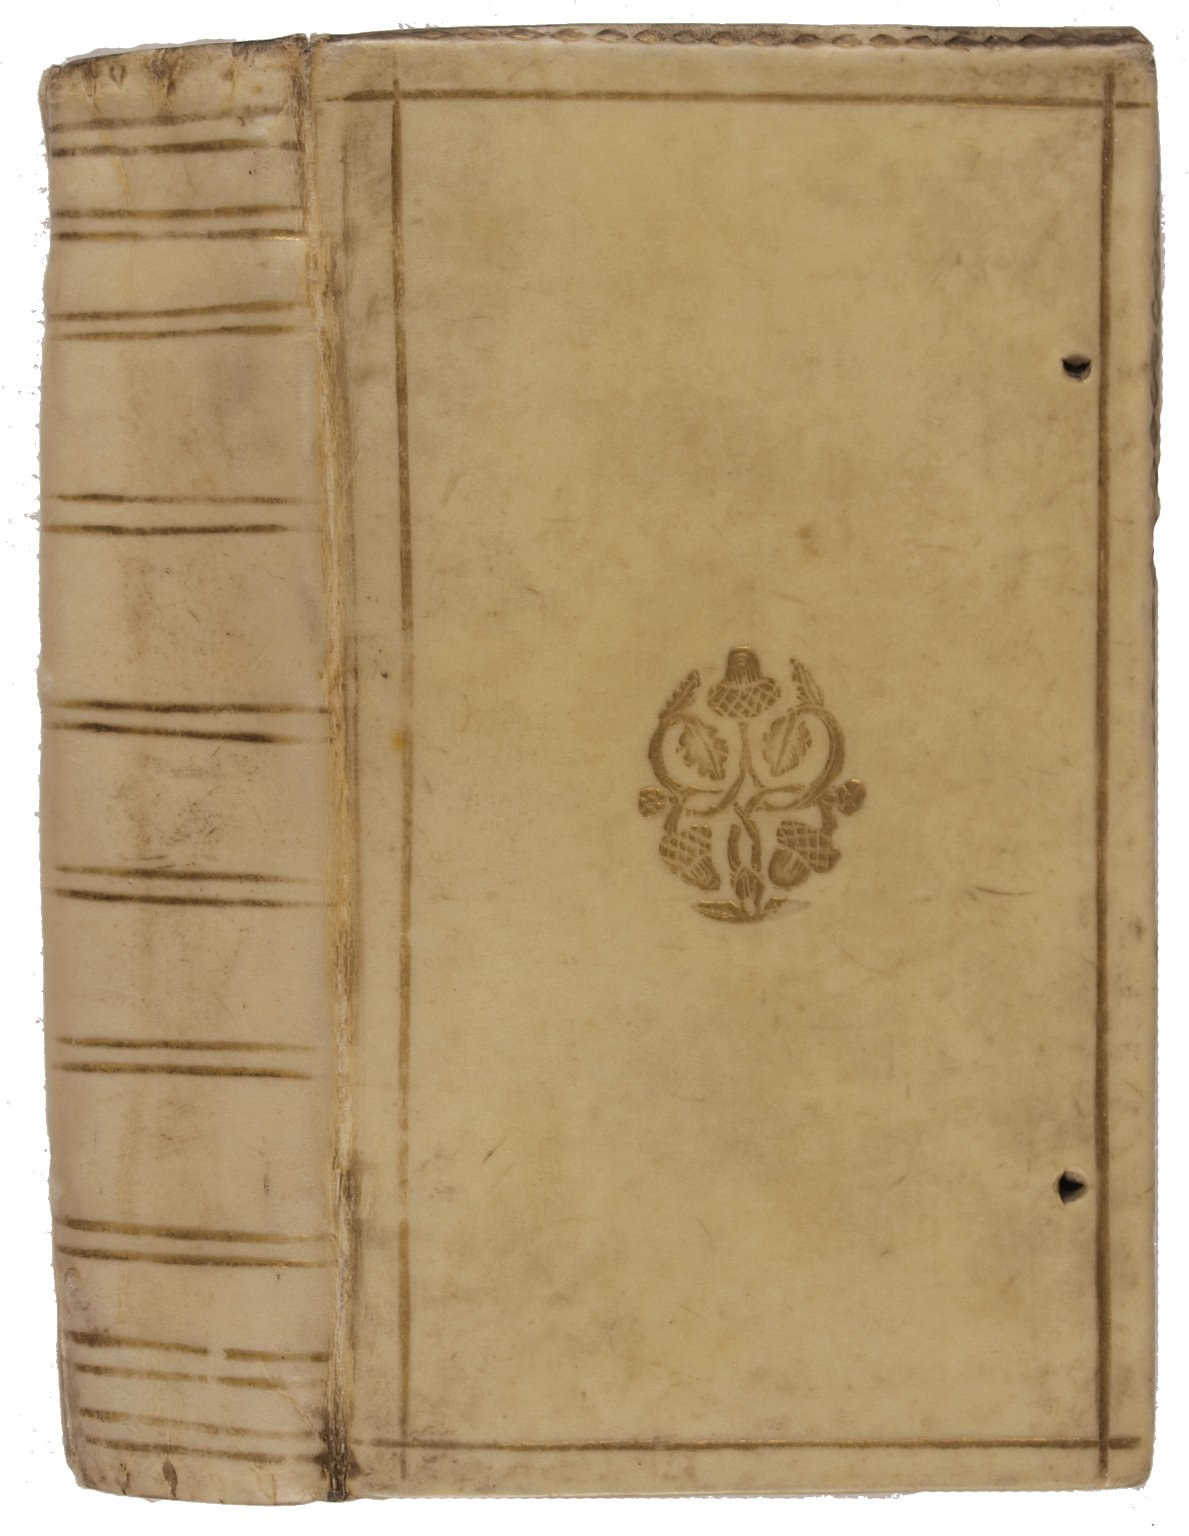 Front cover and spine, STC 10543 copy 1.